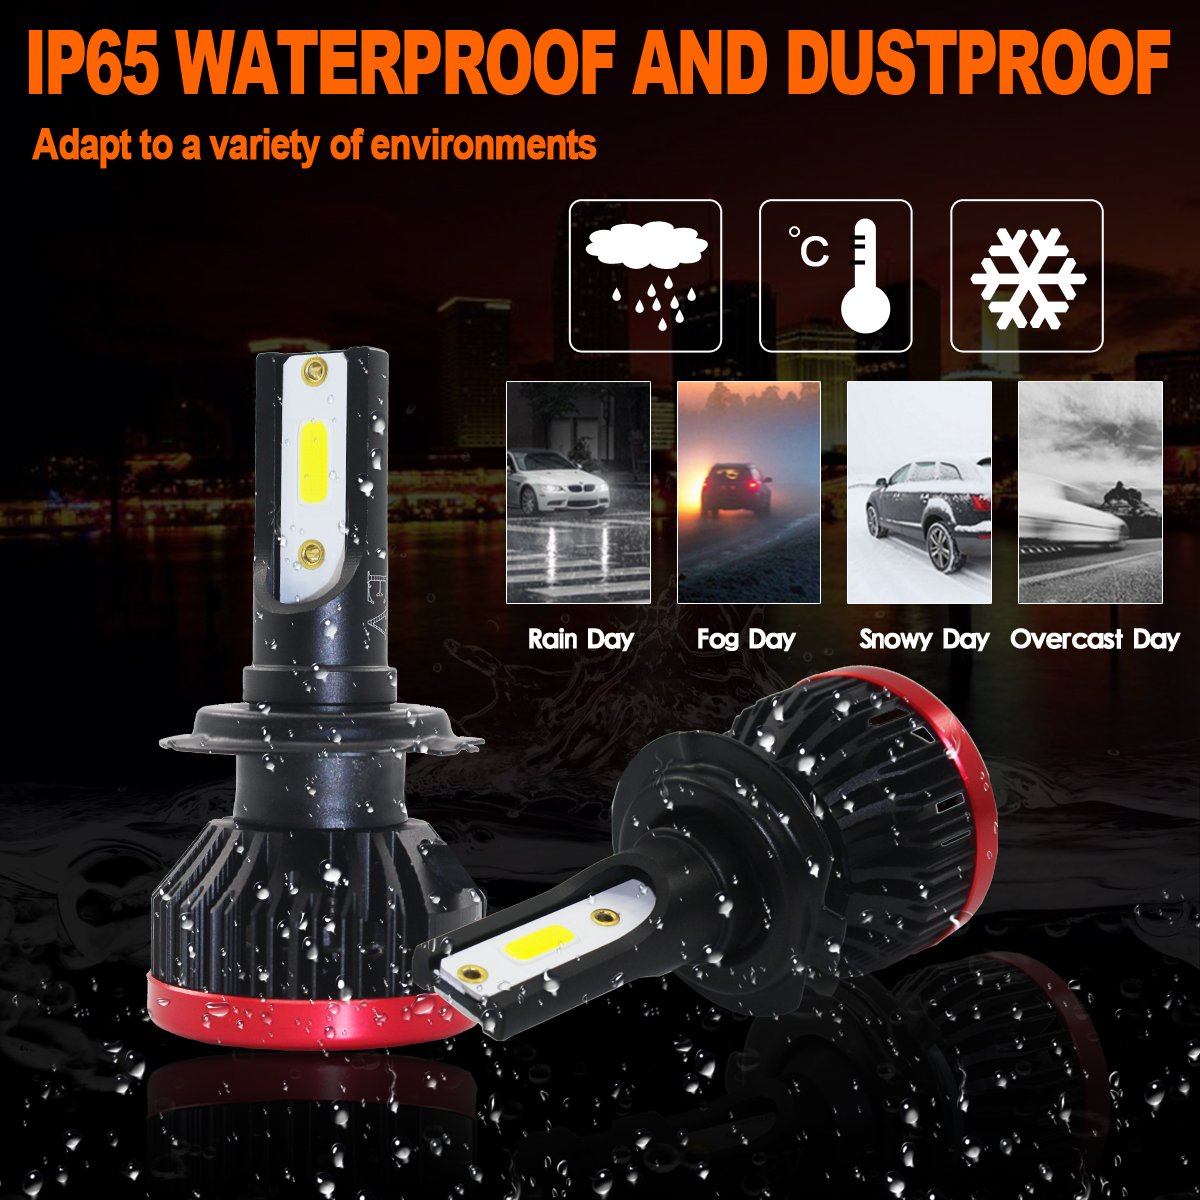 """SWOO CAR 2 Pcs 126W LED Work Lamp 42 LED CHIP 4/""""Offroad Flood Beam Light DRL SUV Truck UTE 12600LM 12V-36V 6 Rows Projector Boat Wharf Working Lamp Searchlight Projector Spotlight Pods Fog Lamp IP67"""